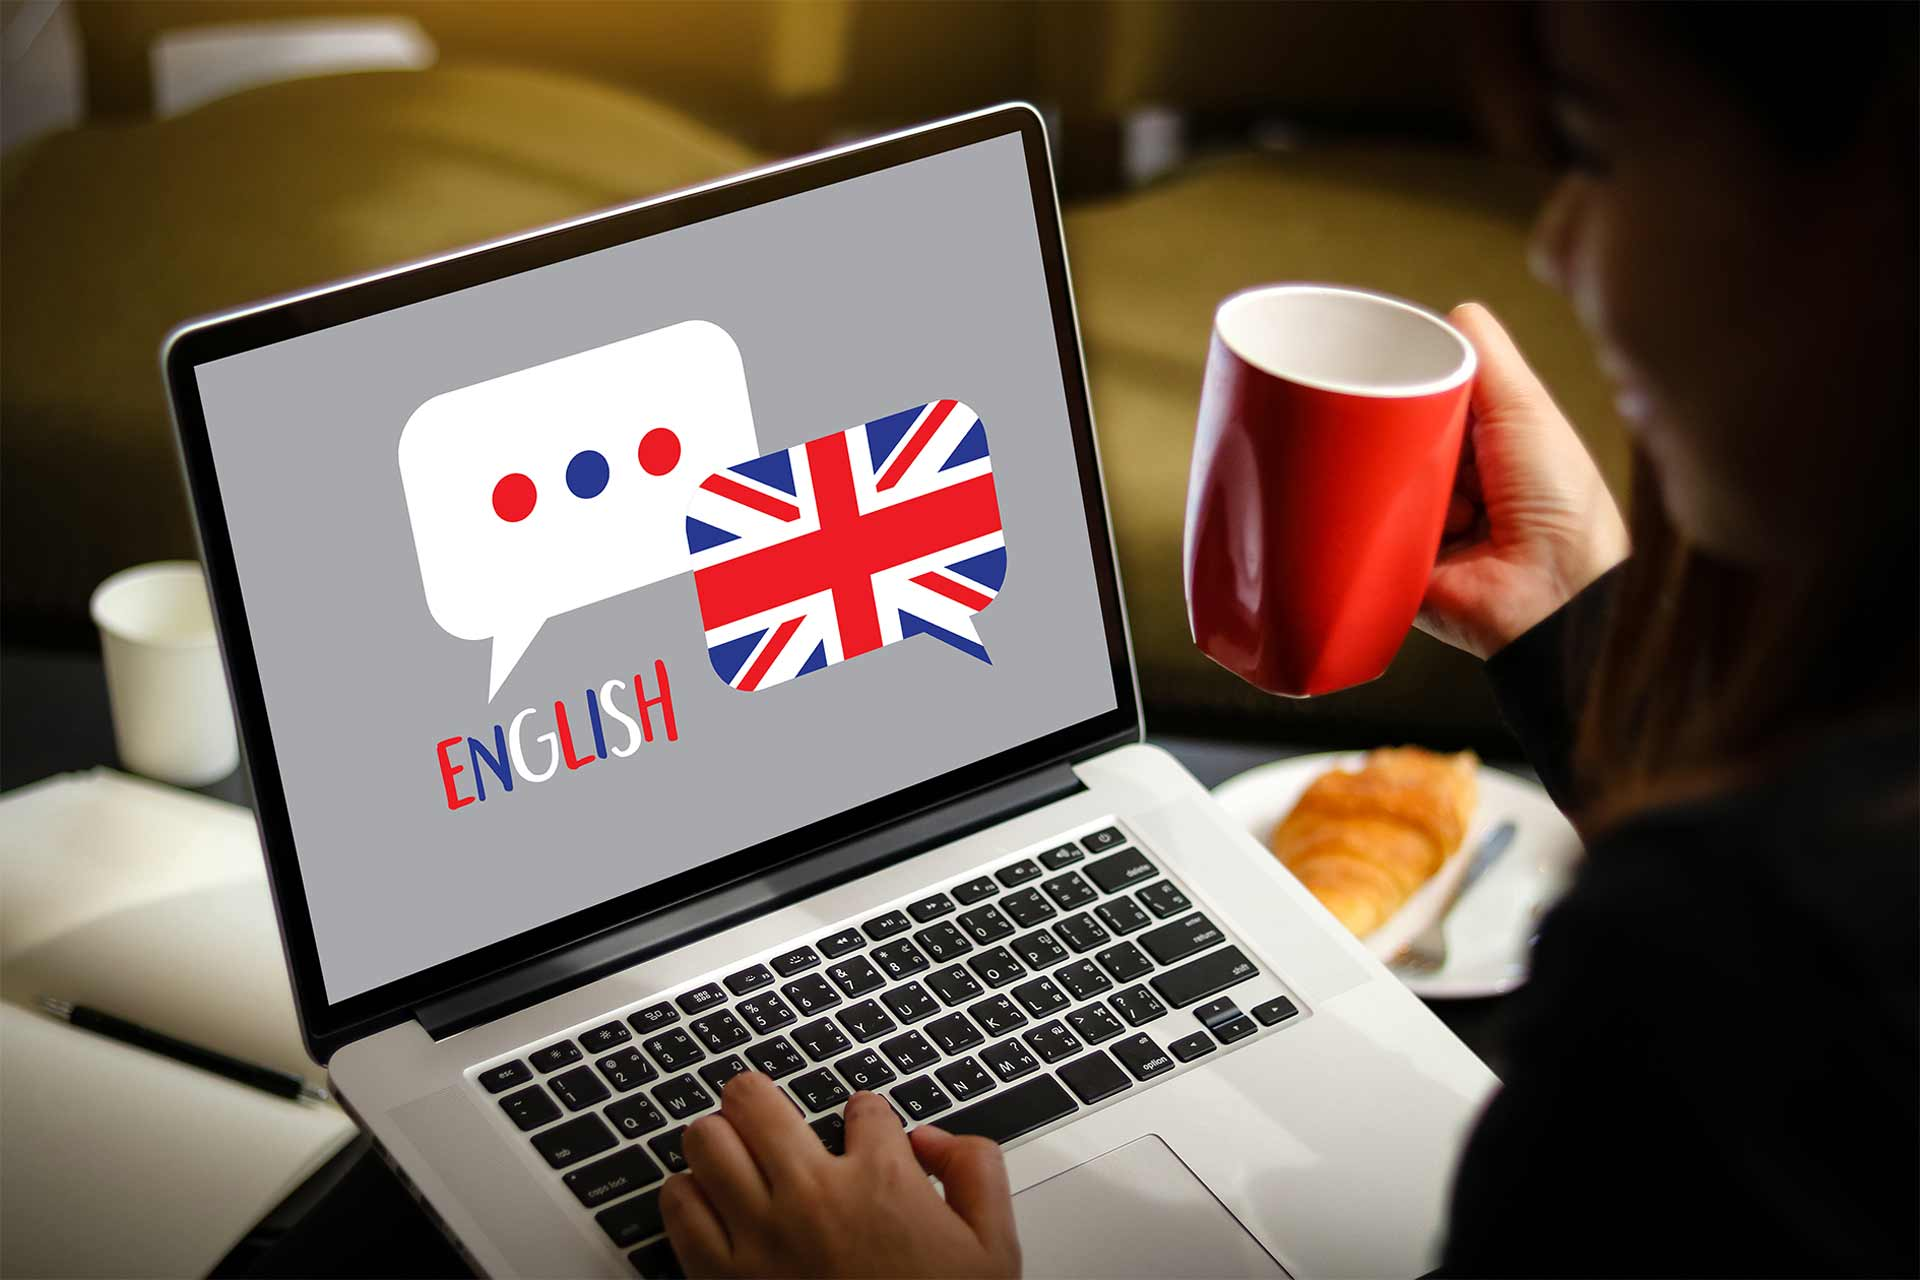 english pronunciation online course to improve British english accent